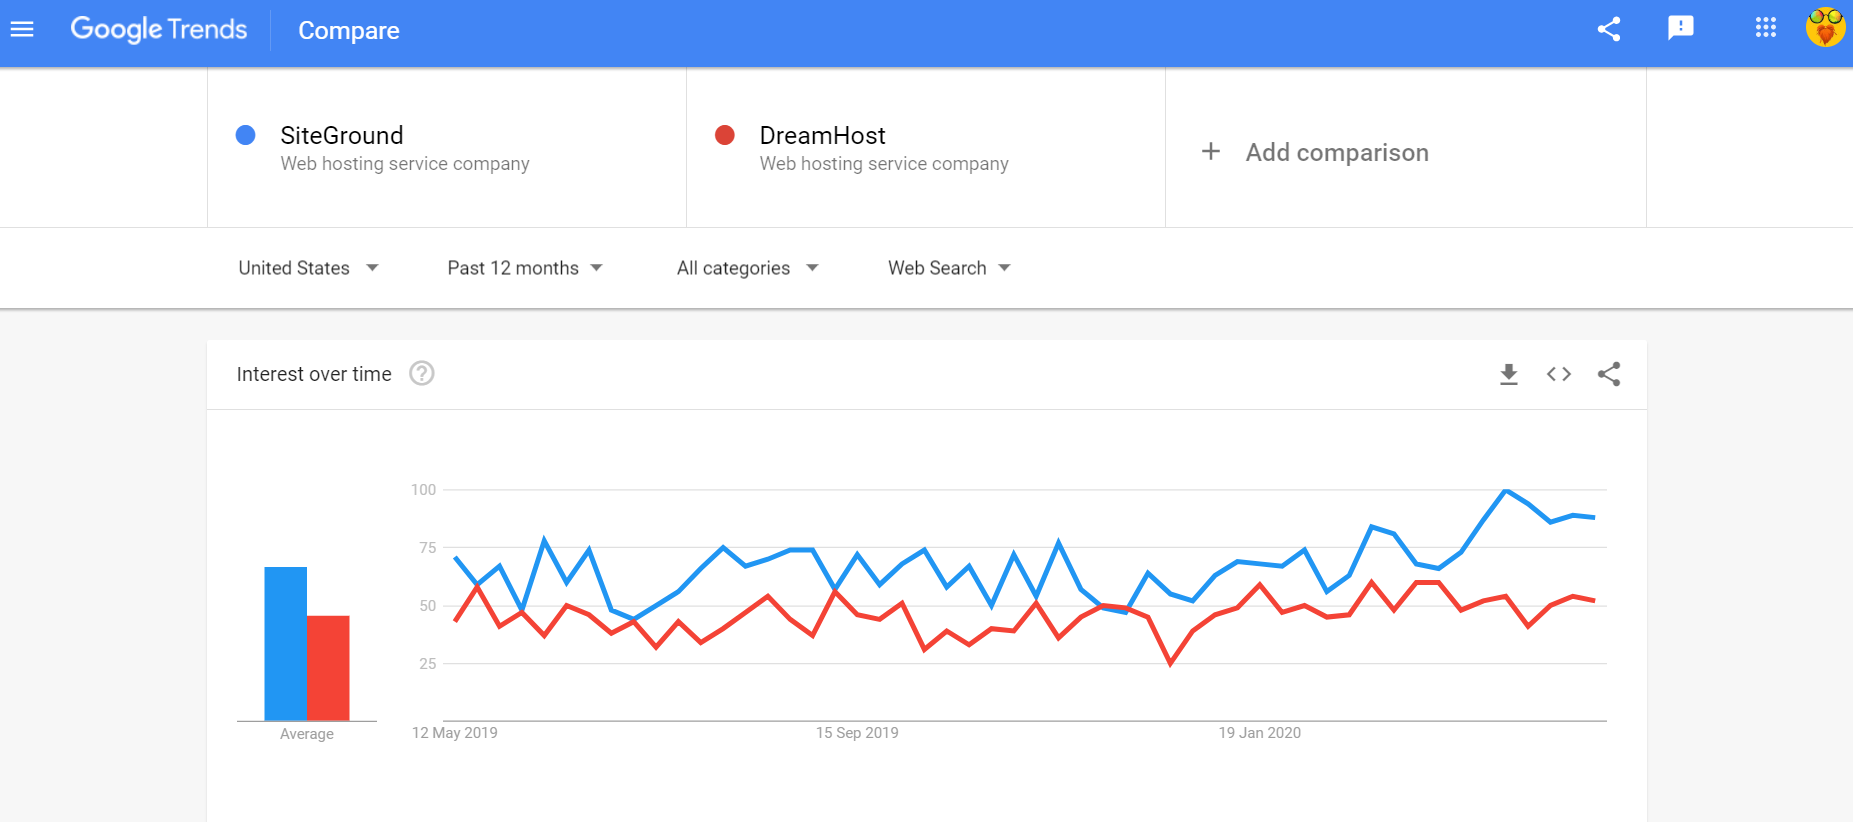 google trends SiteGround vs DreamHost comparison